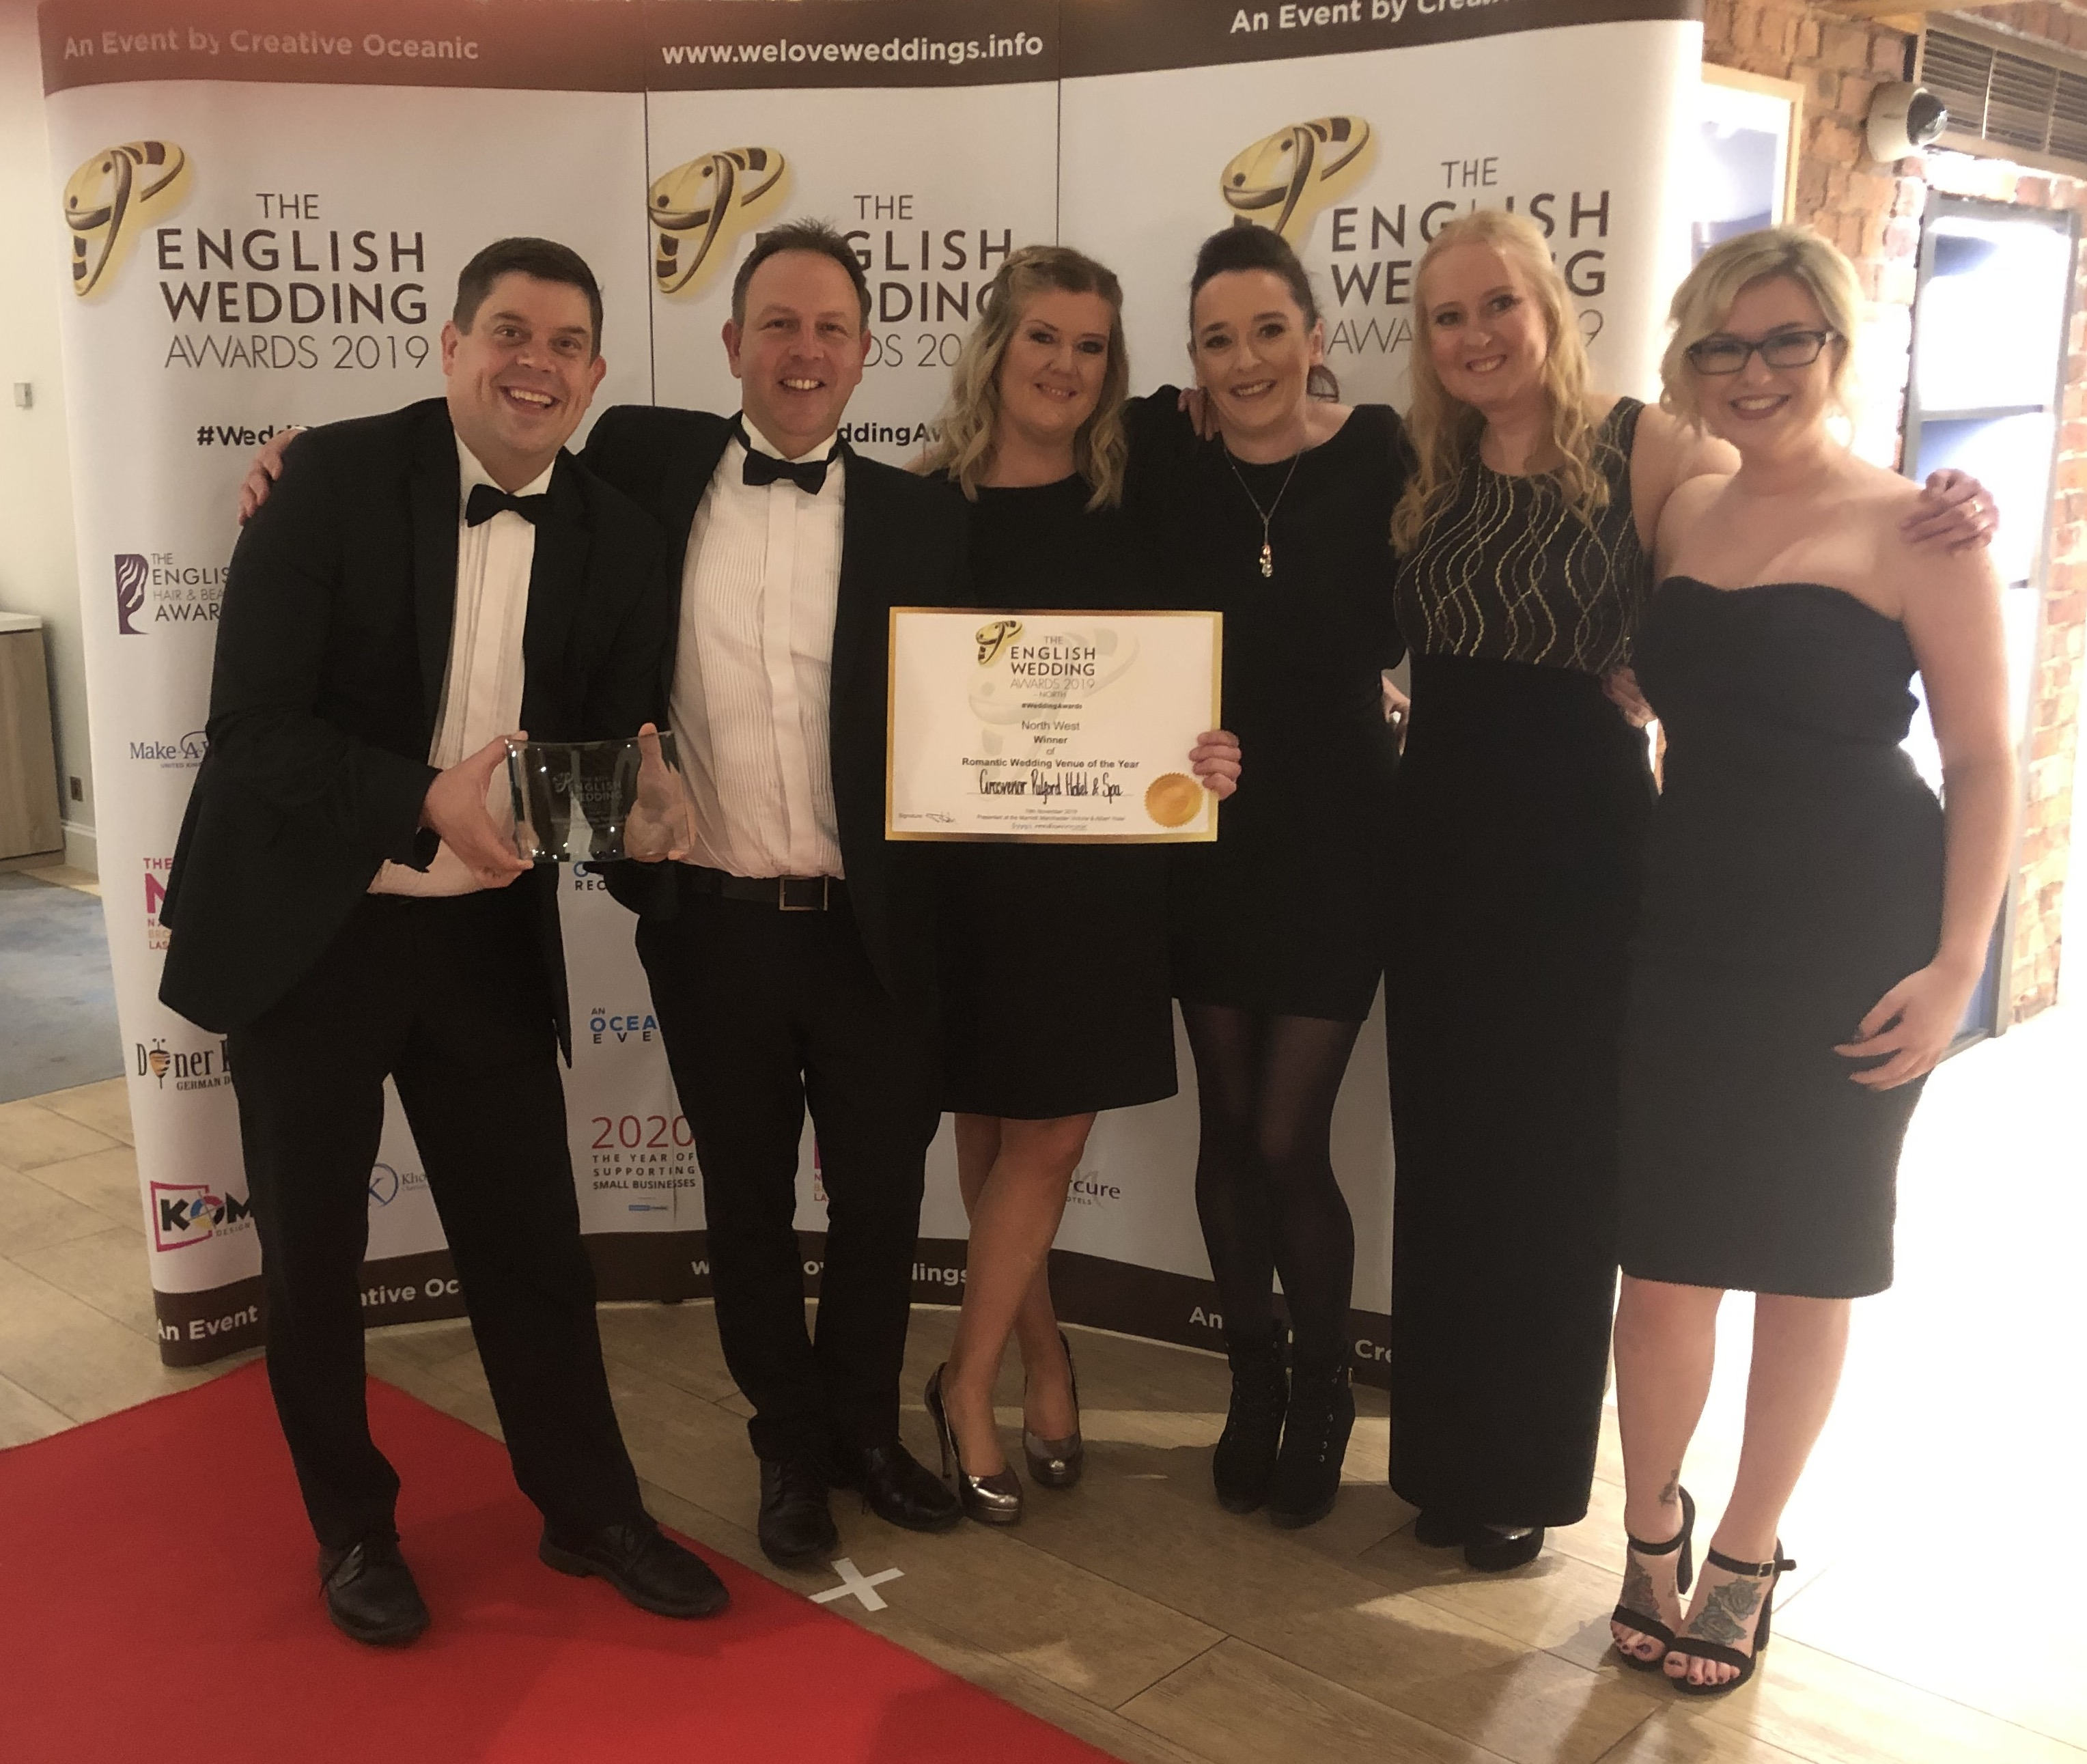 The English Wedding Award Winners 2019